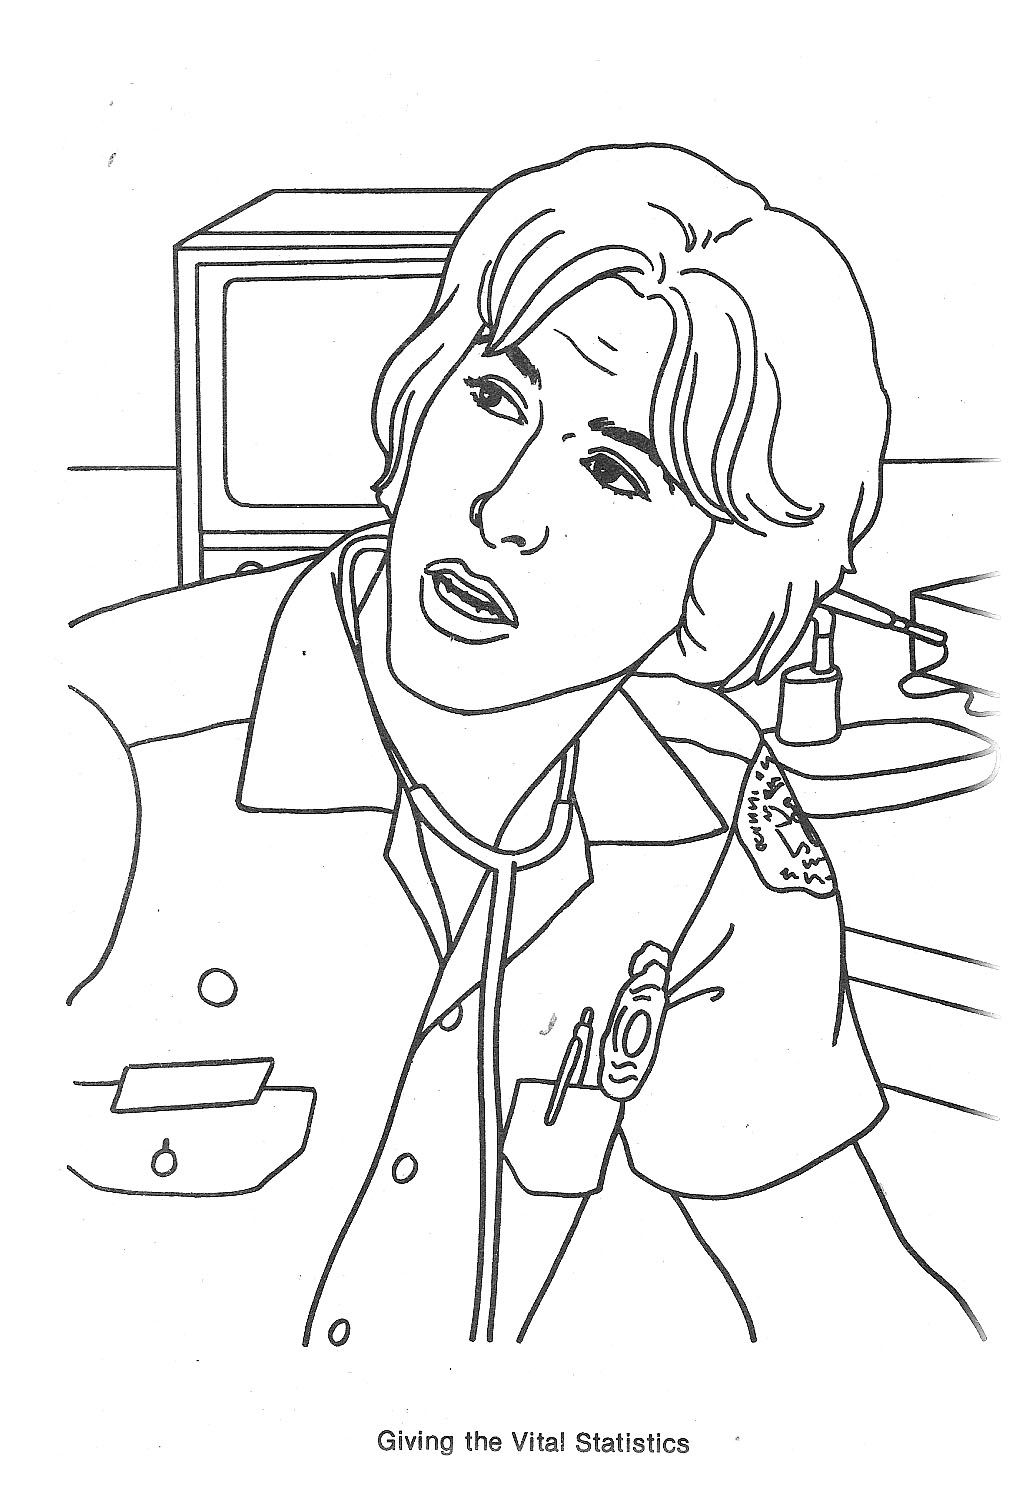 tv show flash coloring pages emergency tv show coloring pages randolph mantooth show pages flash coloring tv